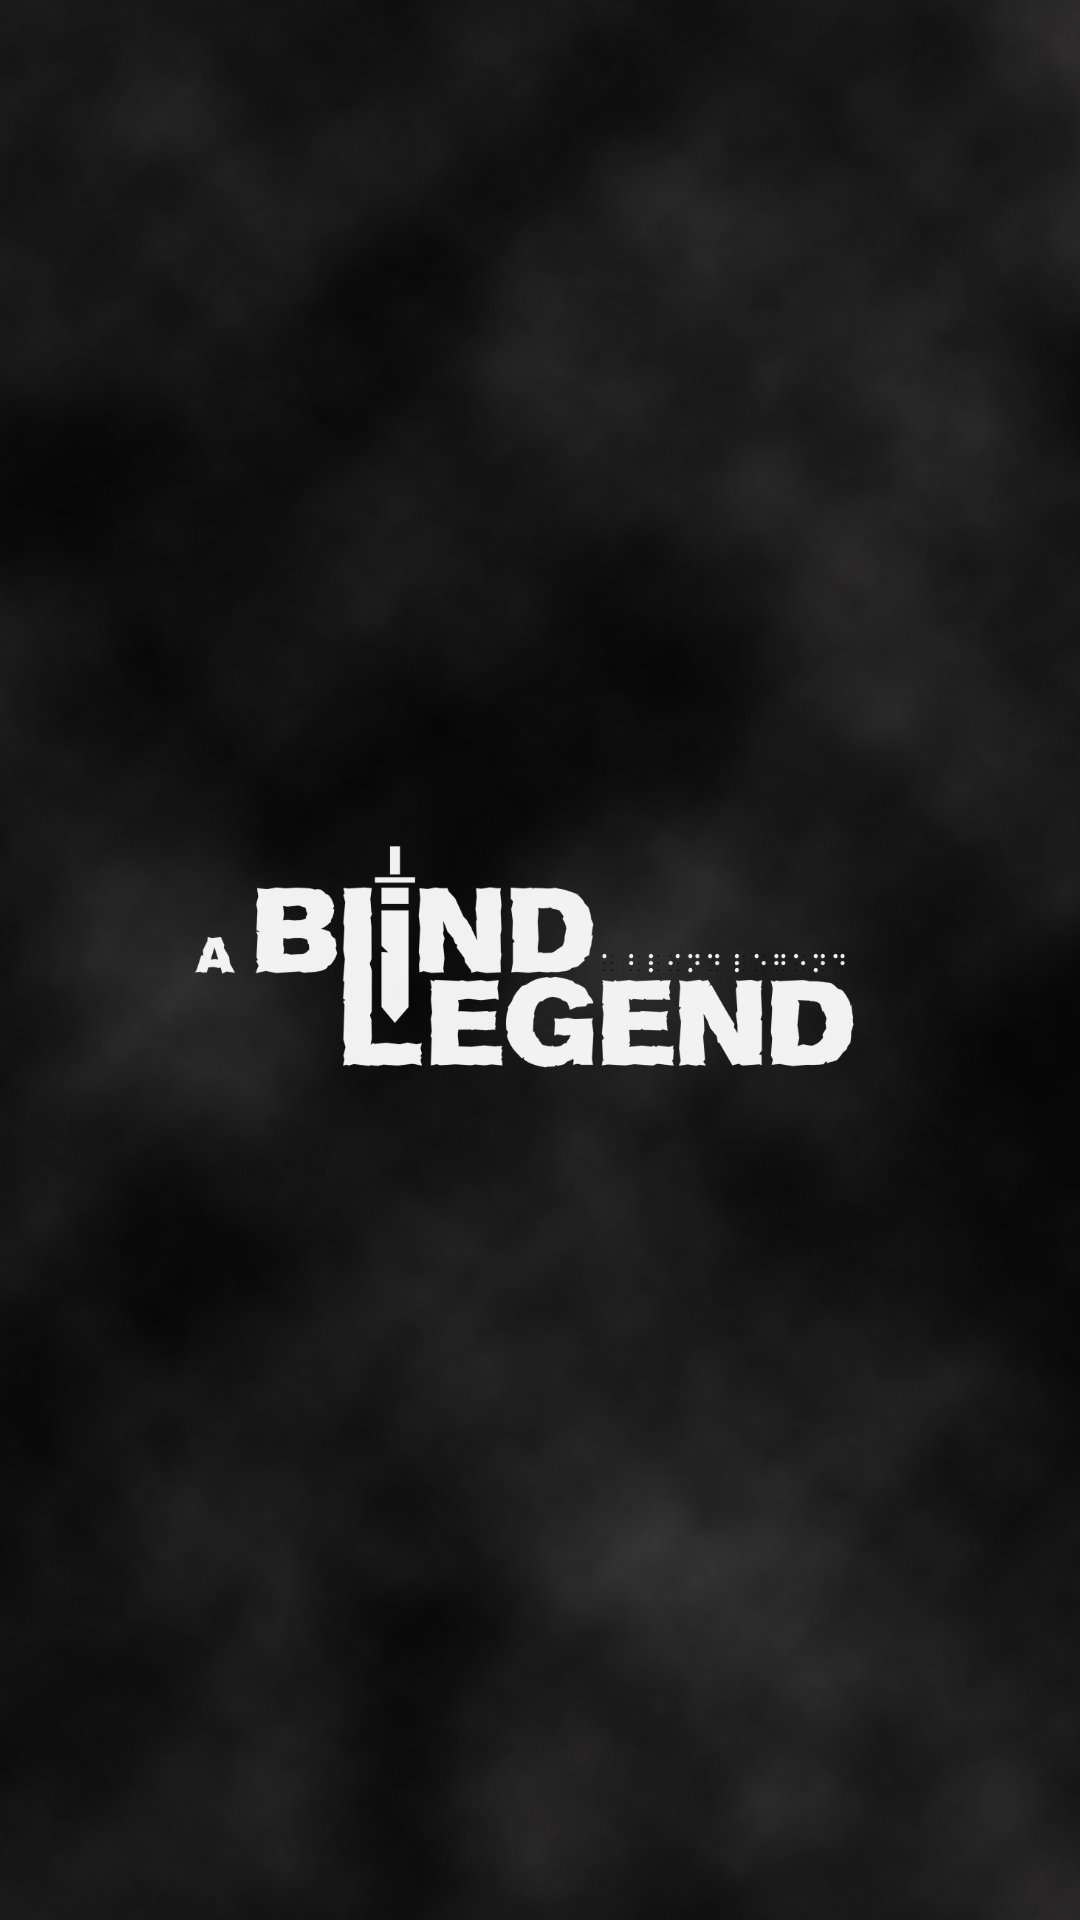 androidアプリ A Blind Legend【音だけRPG】攻略スクリーンショット1